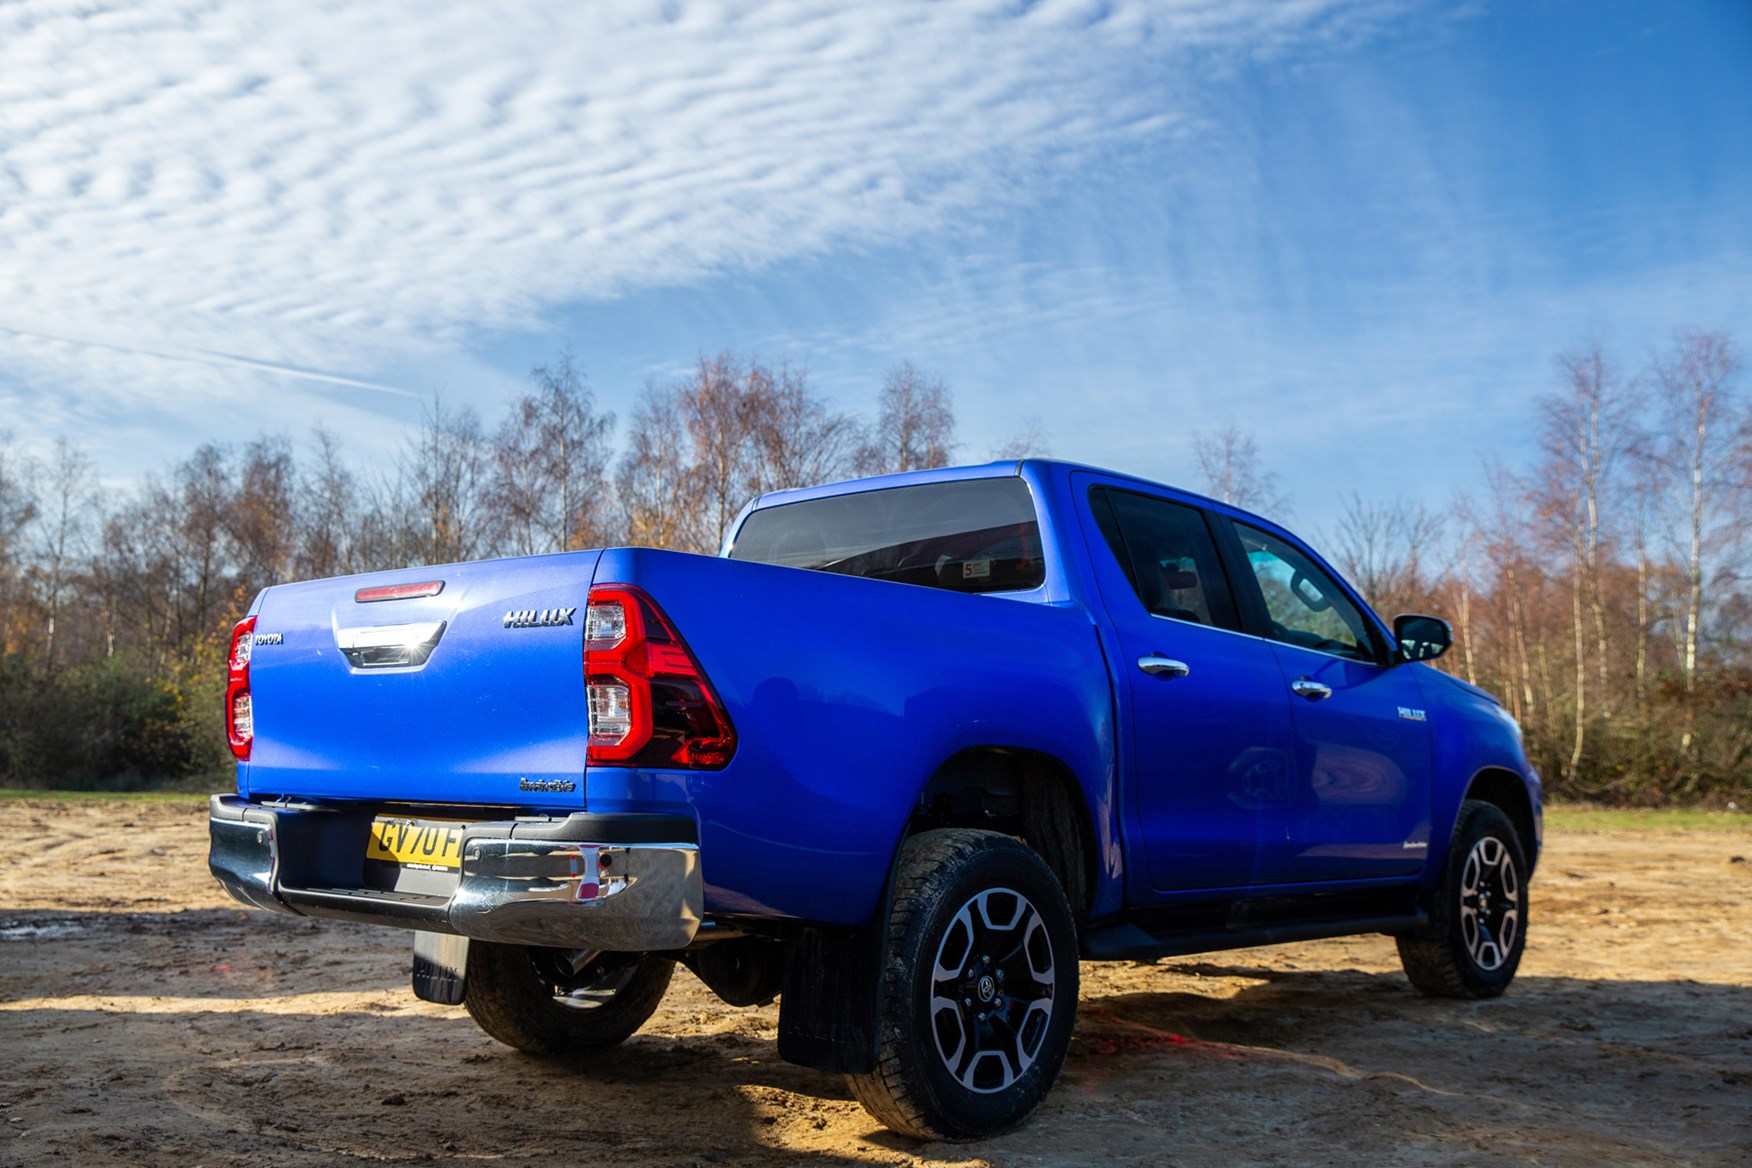 Toyota Hilux review, 2020 facelift, Invincible, blue, rear view